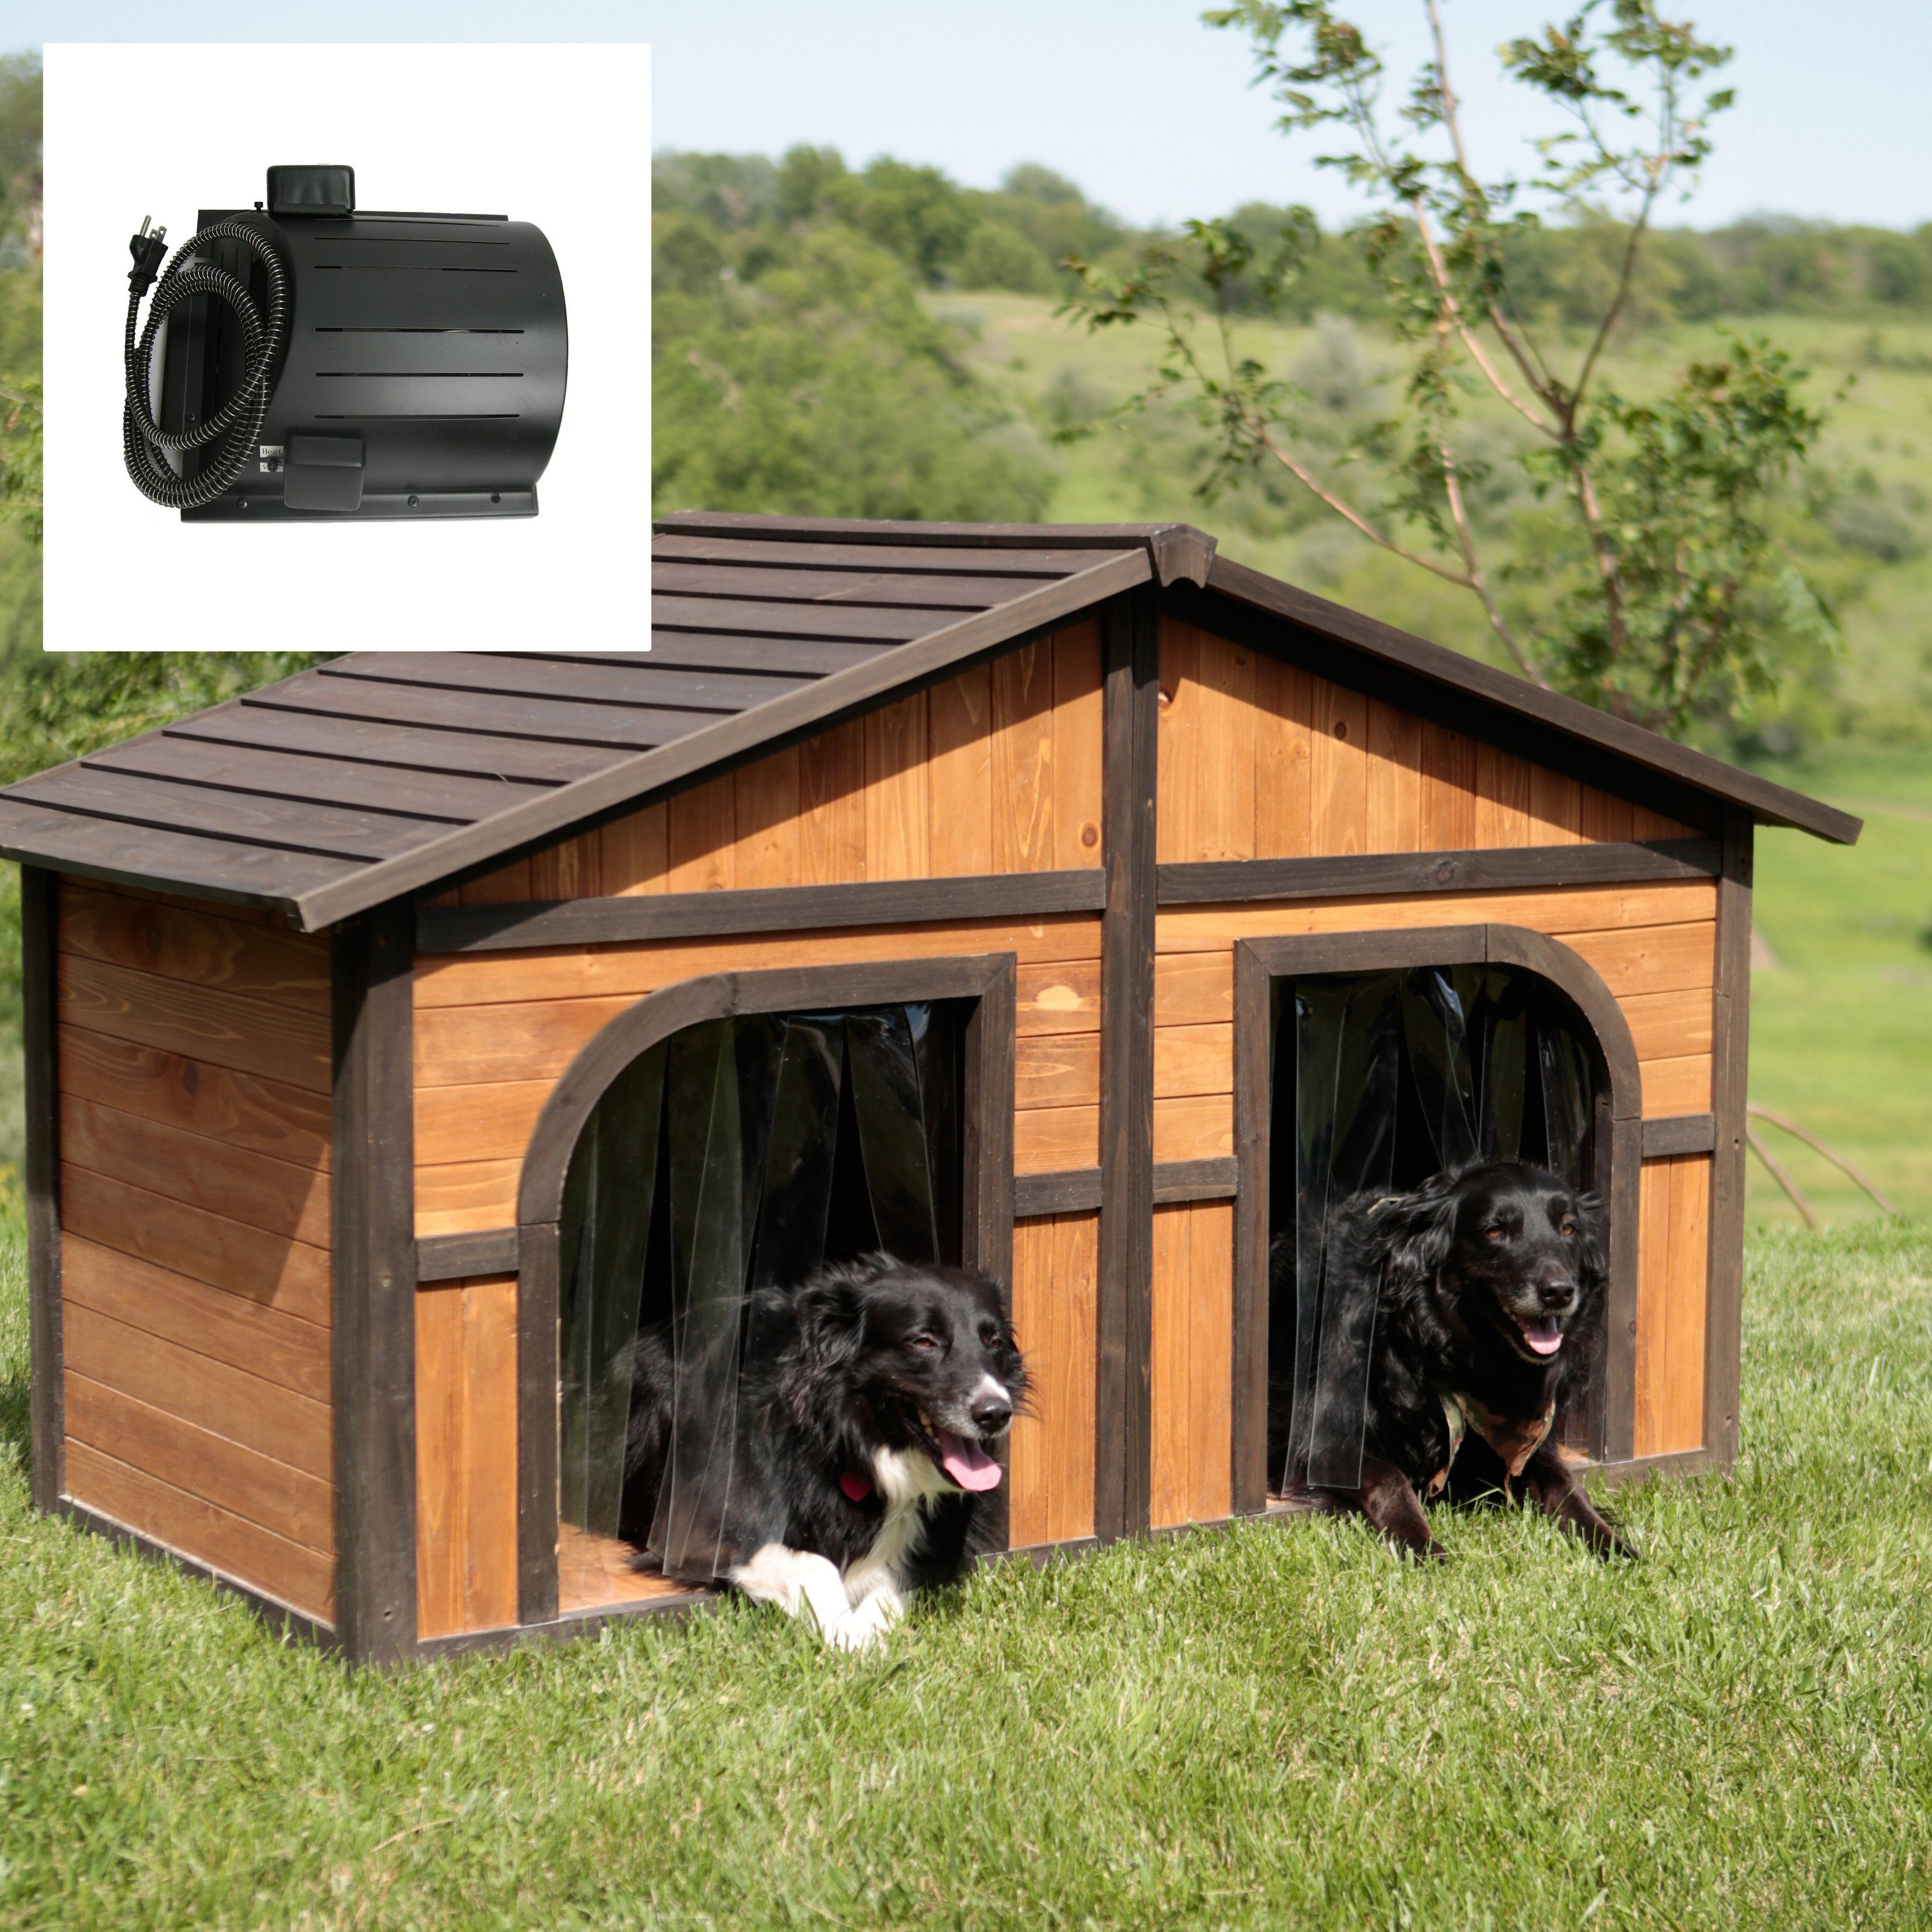 Dog house of green valley - Merry Products Darker Stain Duplex Dog House With Heating Cooling Unit Package Spacious Enough